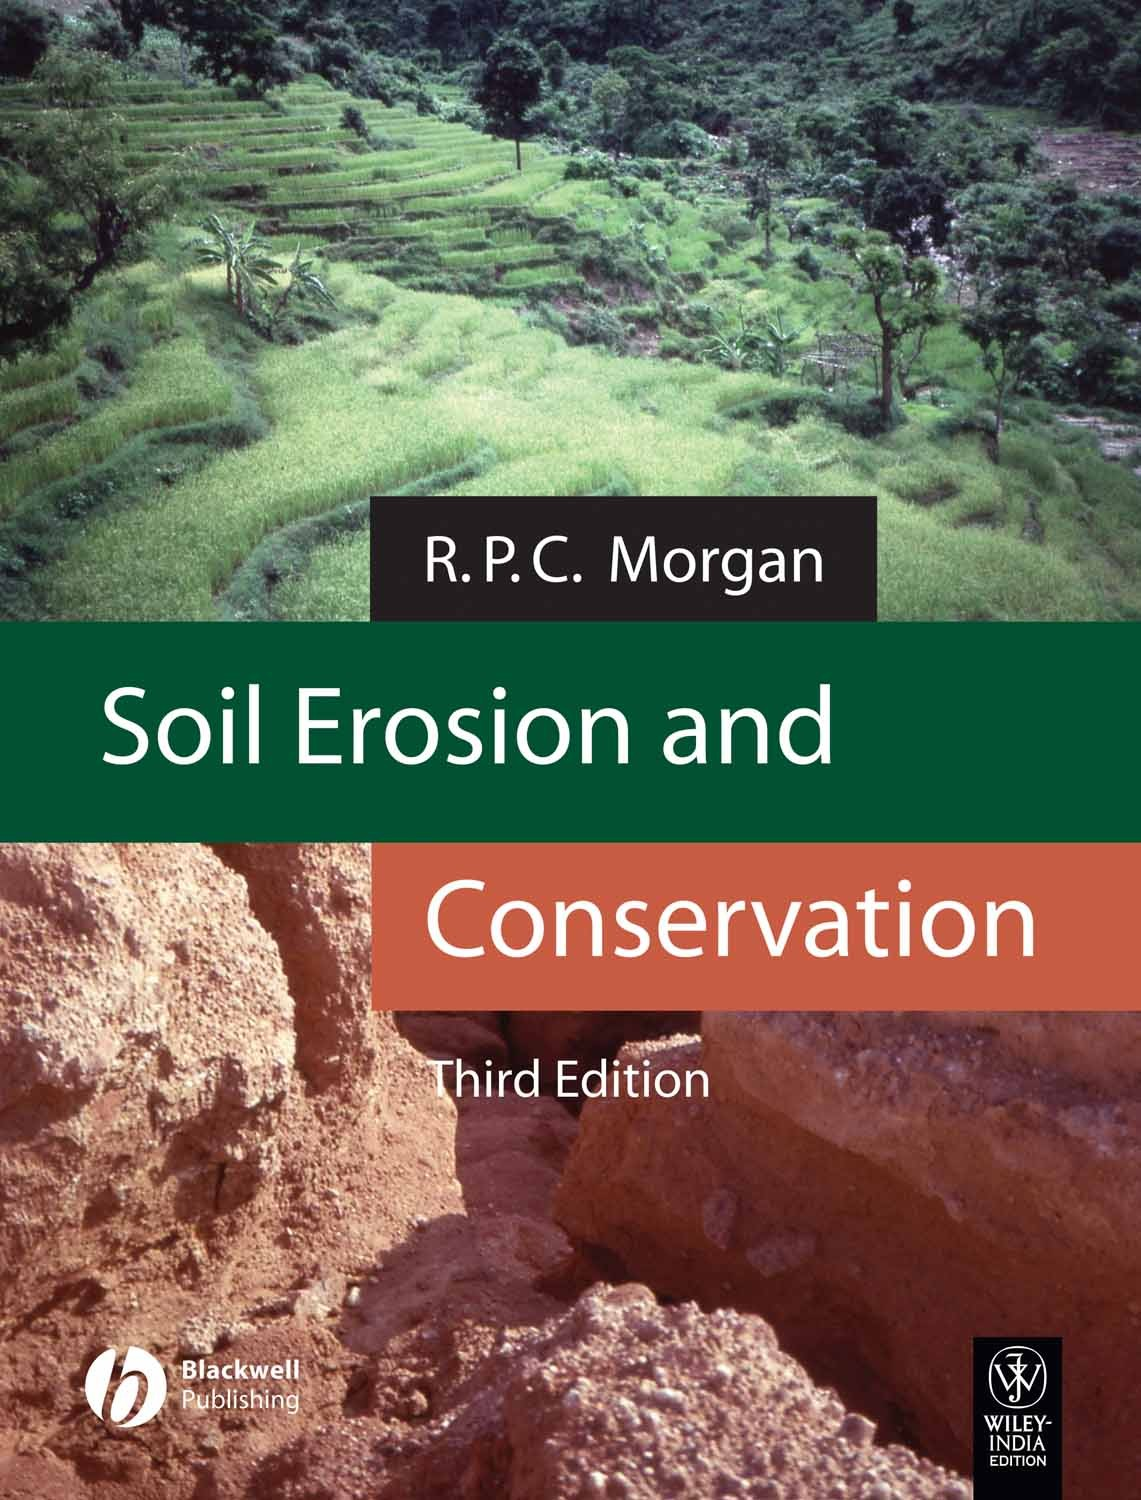 essay on soil erosion Soil erosion occurs when soil is removed through the action of wind and water at  a greater rate than it is formed soil the soil covering the surface of the earth.